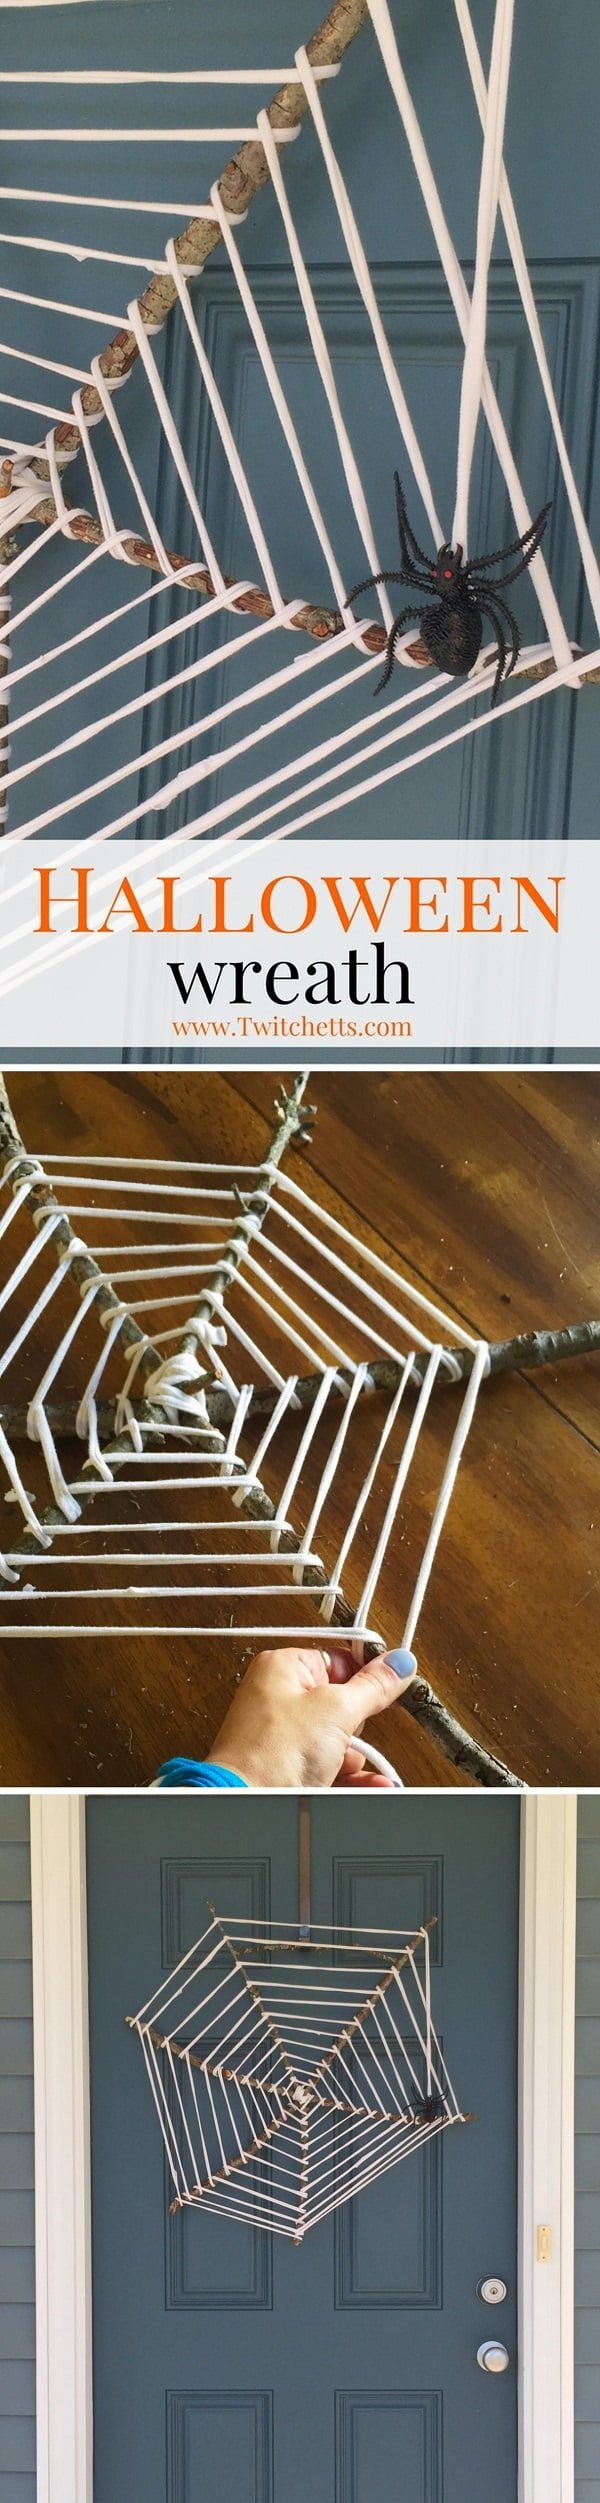 Check out the tutorial on how to make an upcycled #DIY spider web wreath for Halloween home decoration #Halloween #upcycle #repurpose #homedecor